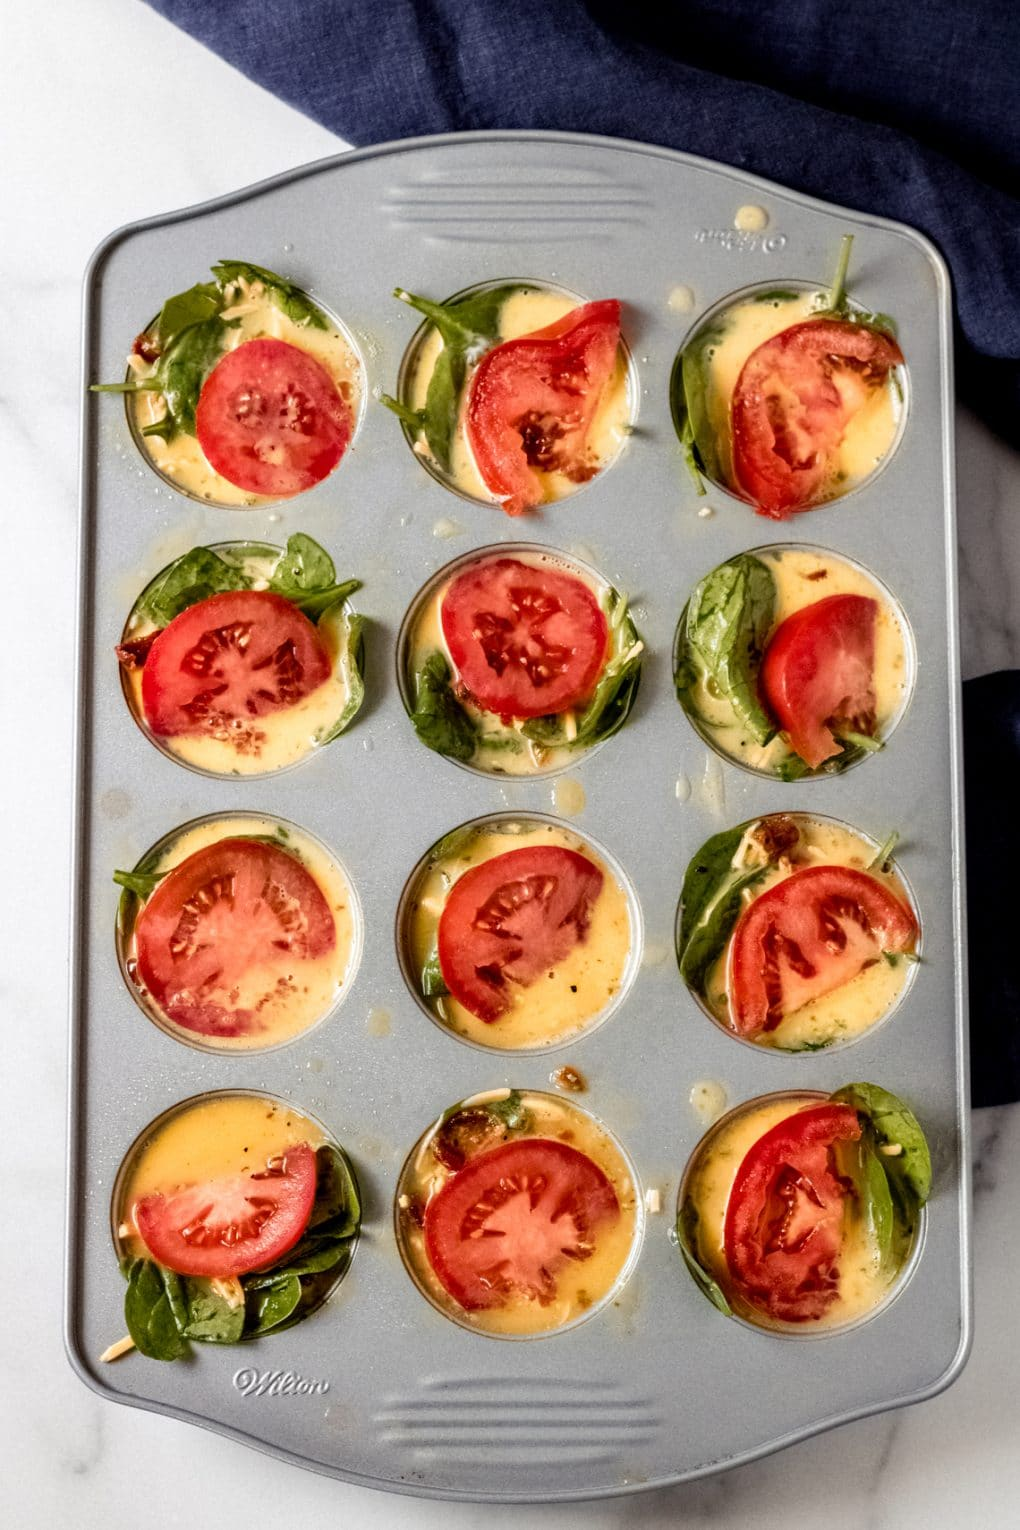 BLT egg bites uncooked in a muffin pan